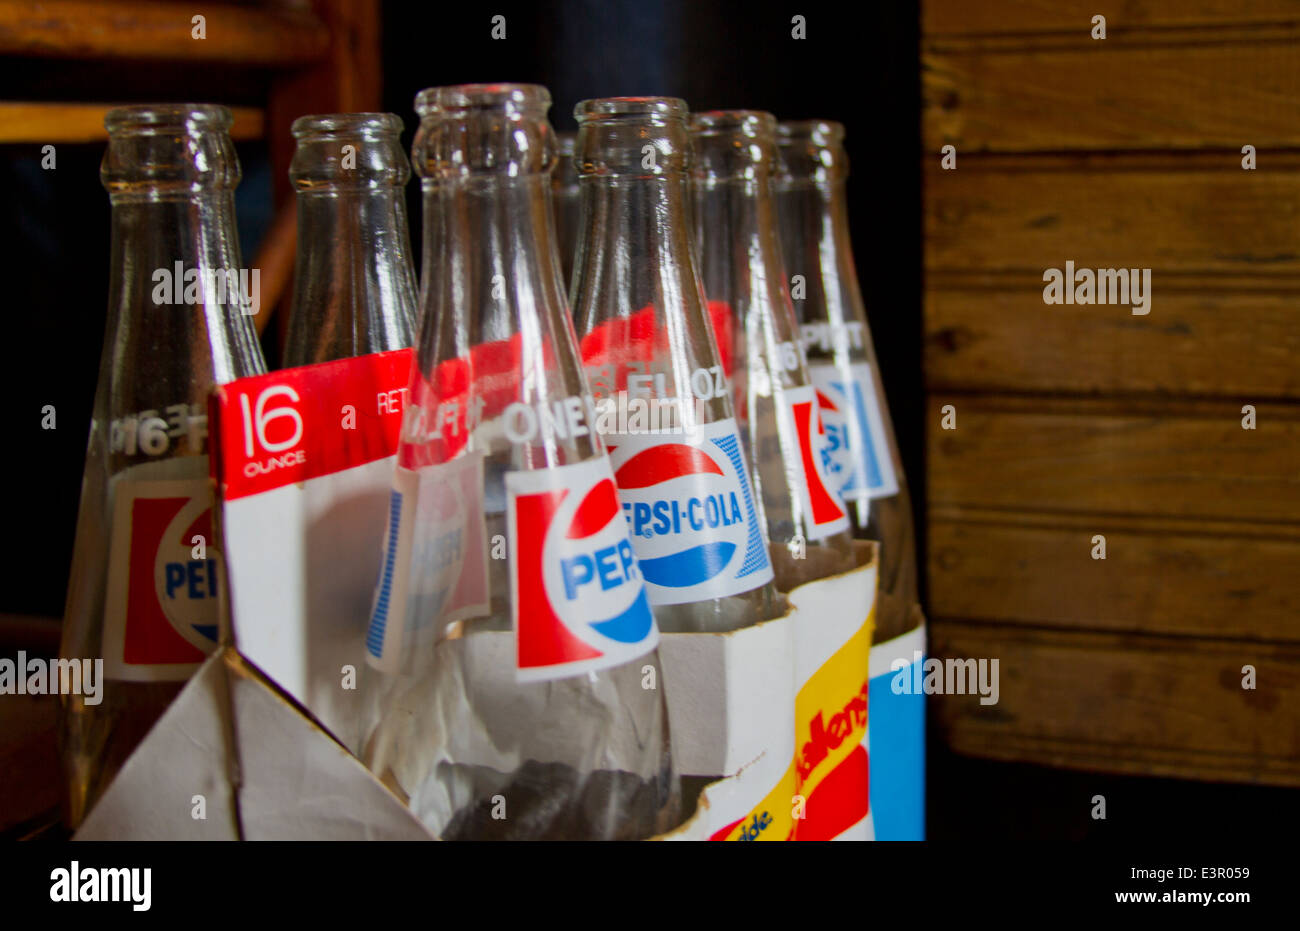 Antique Soda Bottles Stock Photos & Antique Soda Bottles Stock